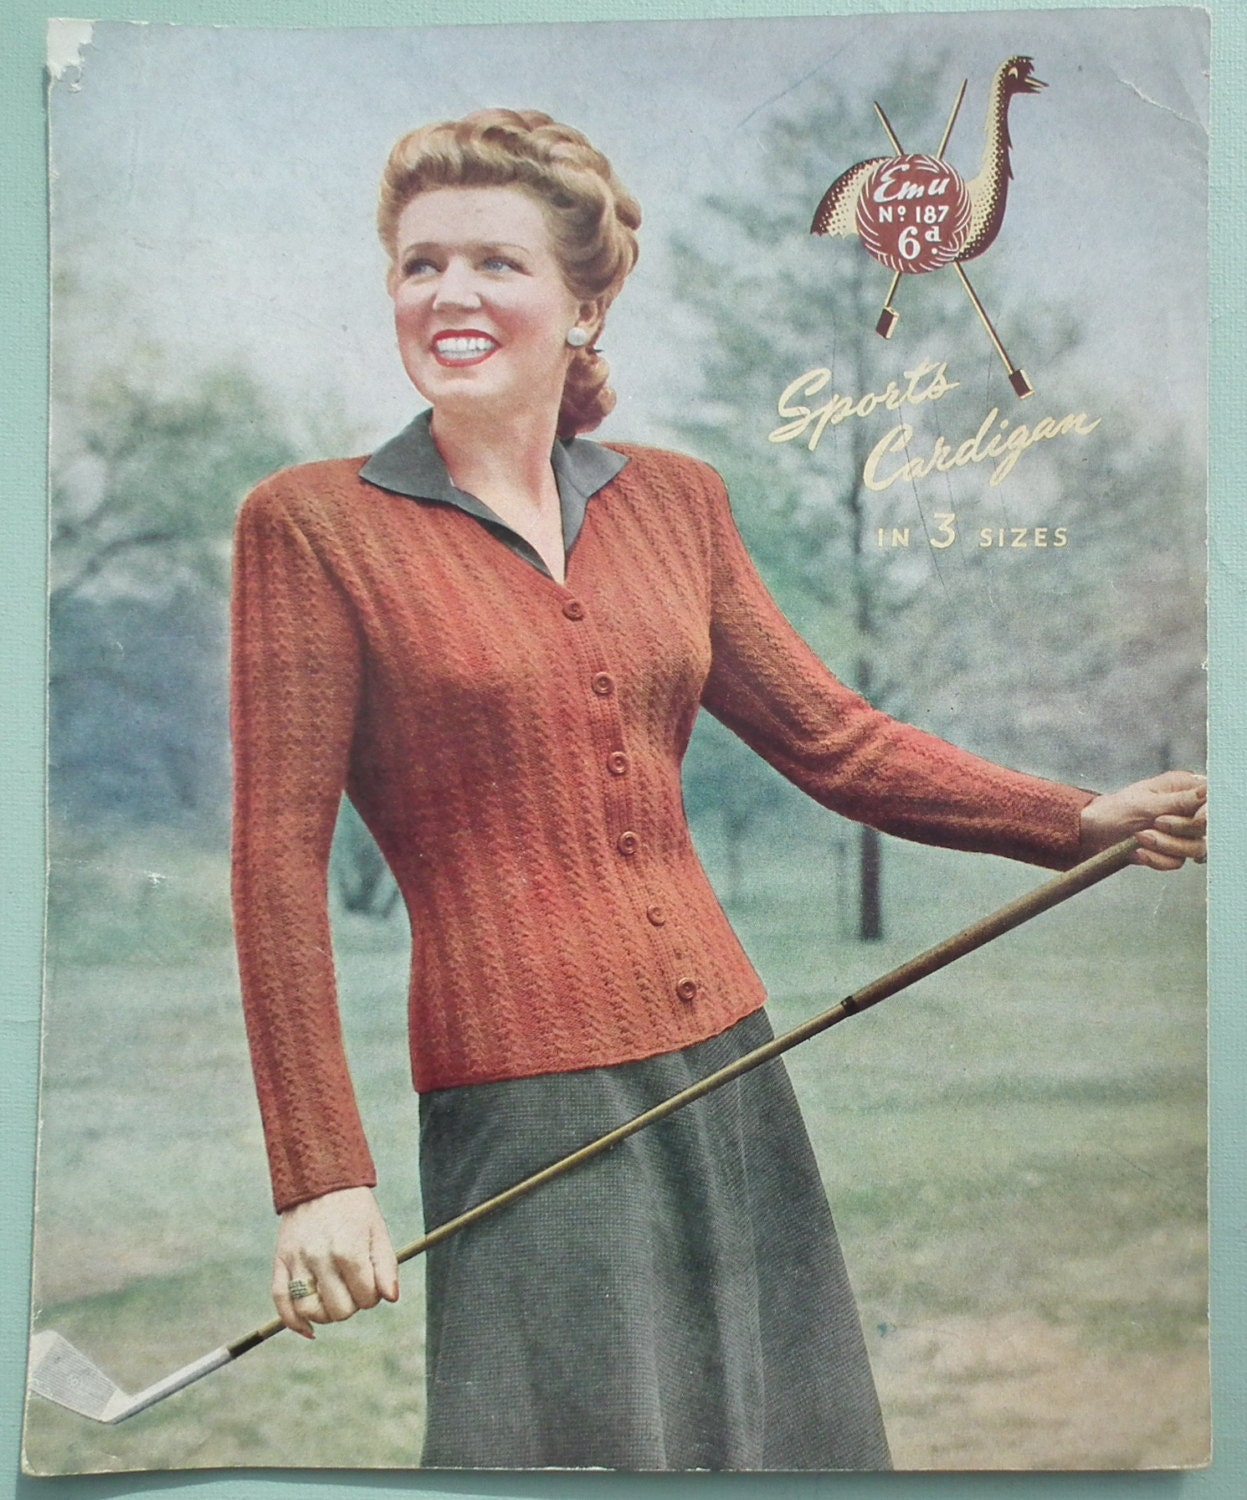 Vintage 1940s Knitting Pattern Women 39 S Cardigan Golf Sports Cardigan Fitted Style 40s Original